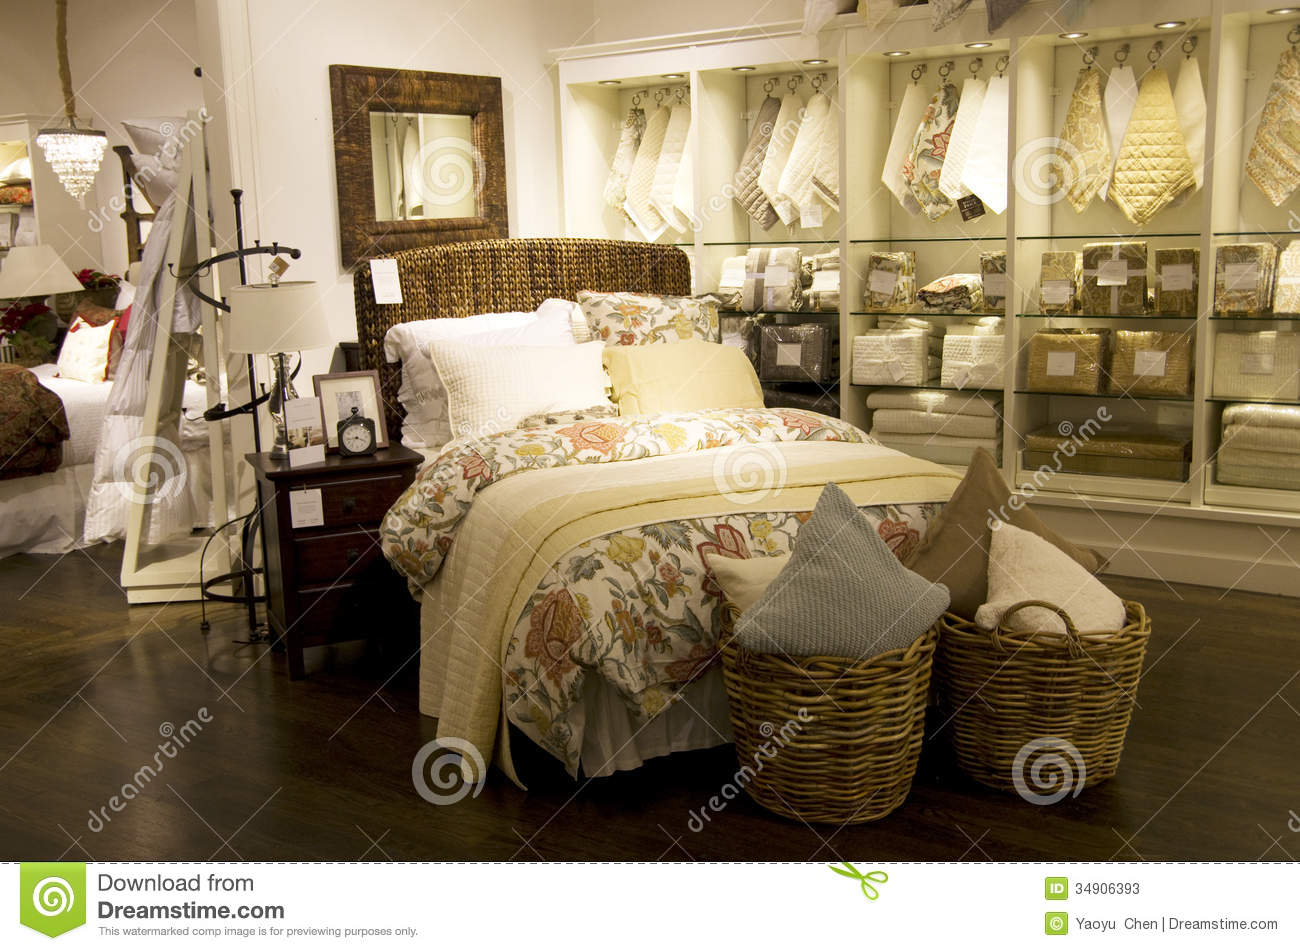 Home bedroom decor furniture store  Home Bedroom Decor Furniture Store  Stock Photos Image 34906393. Bedroom Furniture Shops   PierPointSprings com